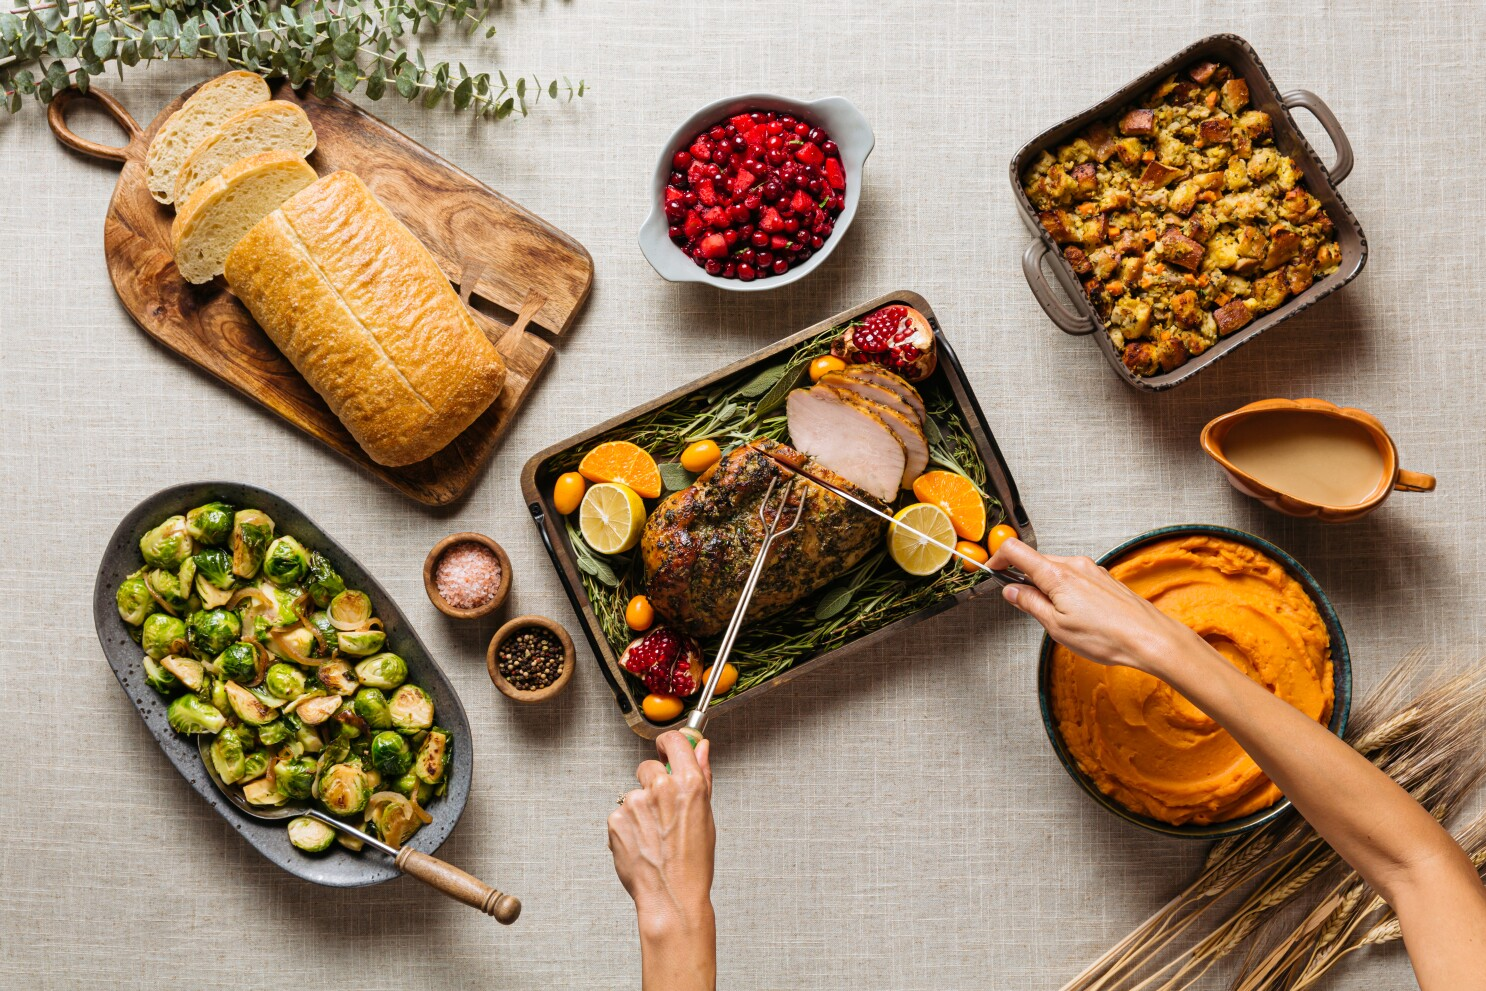 Christmas Buffet San Diego 2021 These San Diego Restaurants Have Take Out Meals For Your Christmas Celebrations Pacific San Diego